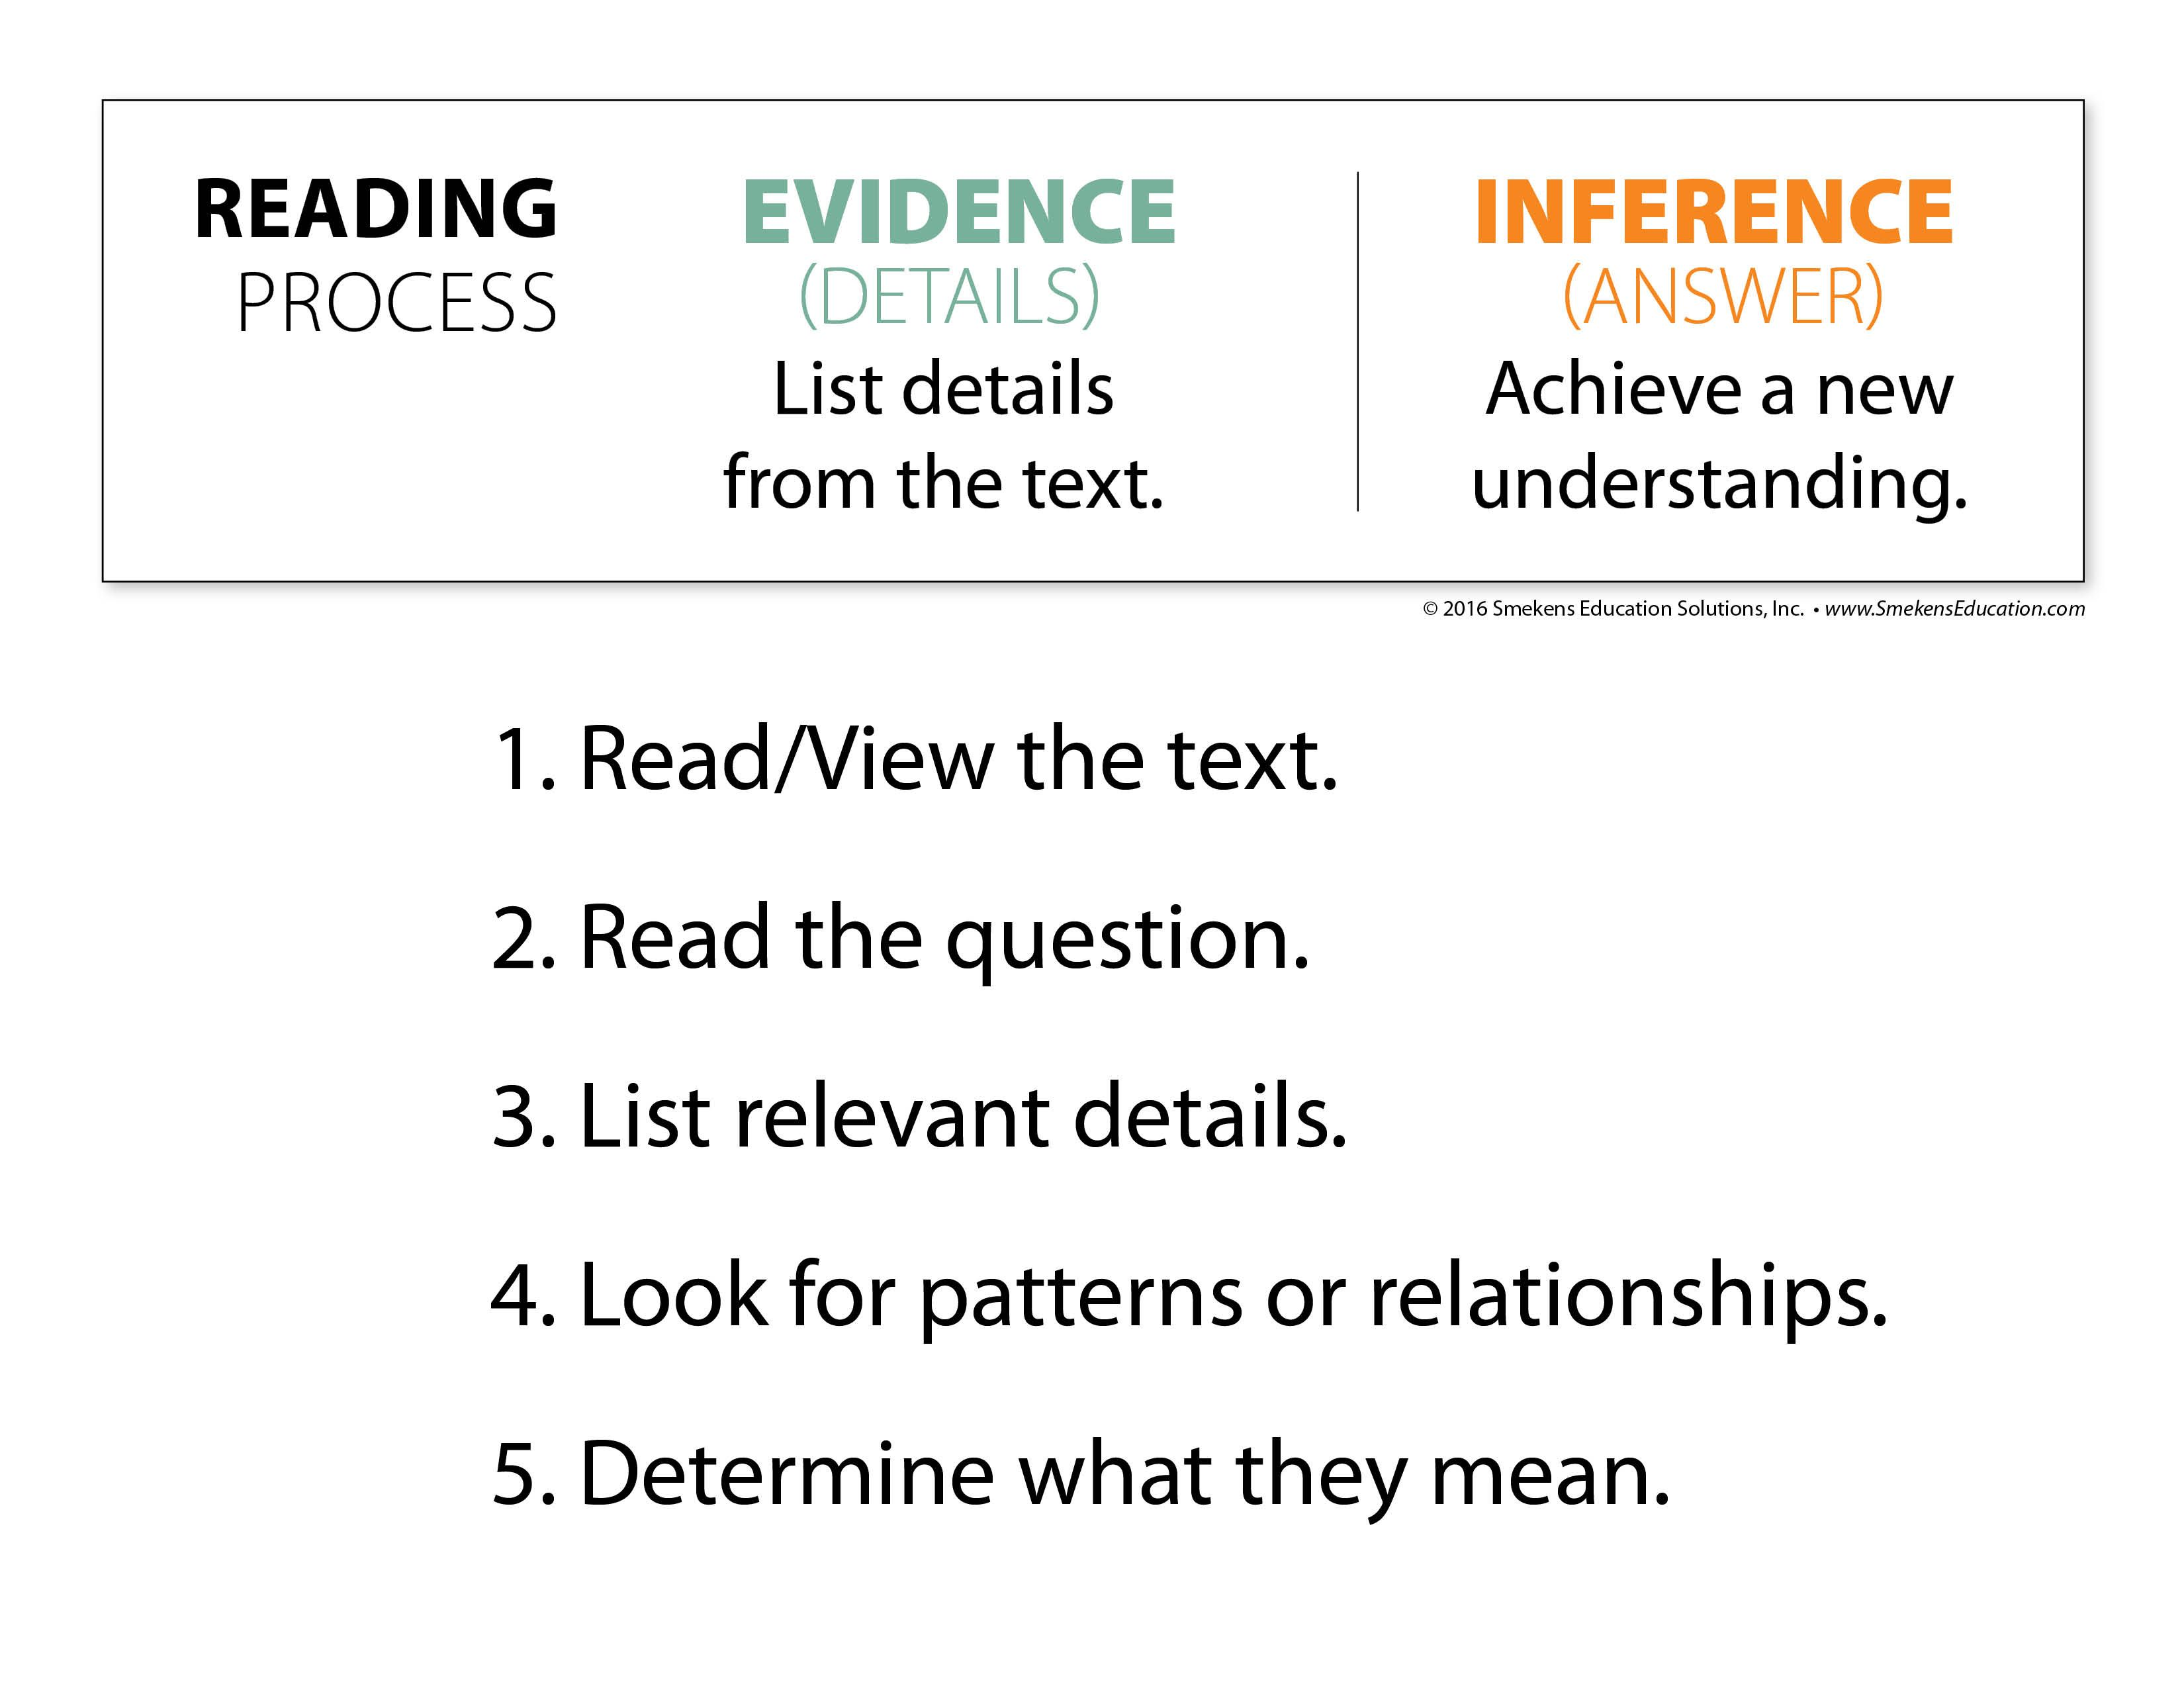 Follow 5 Steps To Make An Inference